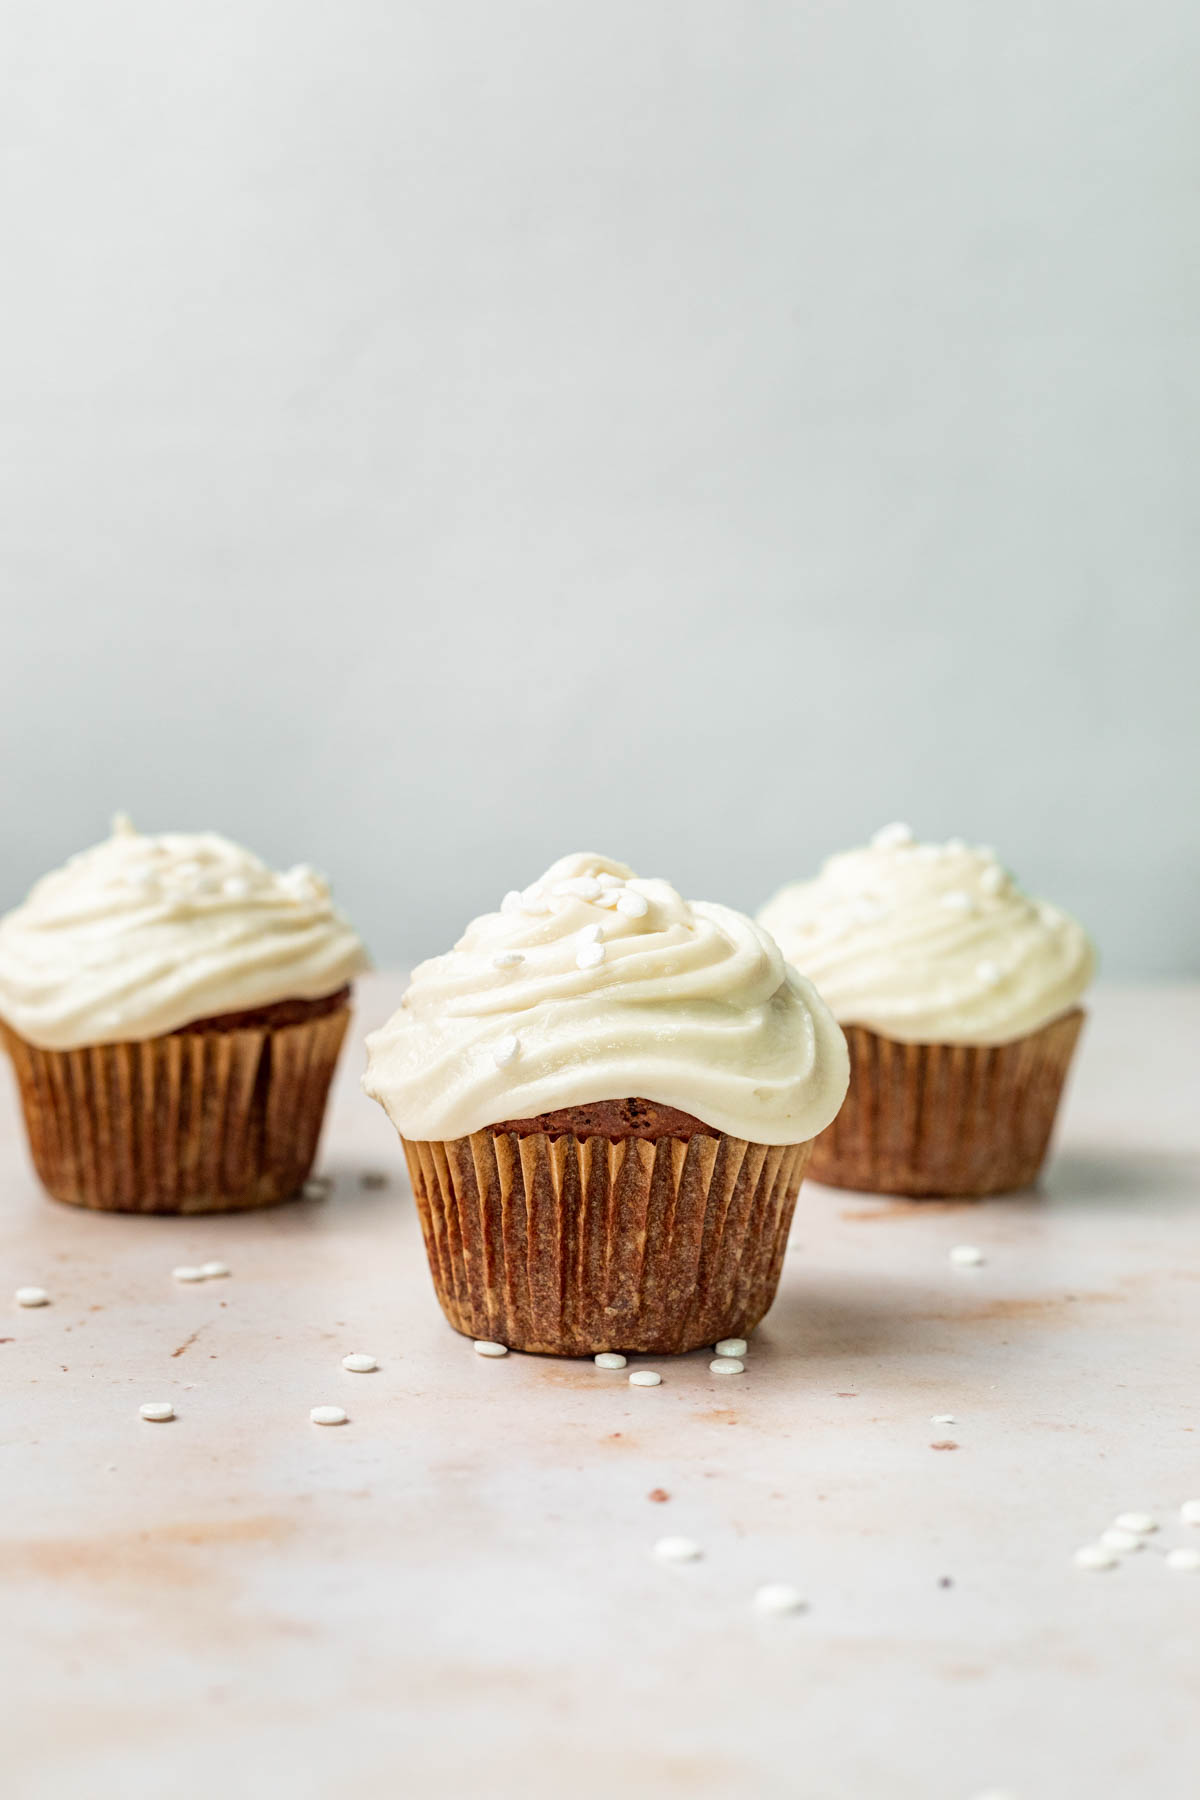 Three chocolate cupcakes with vanilla buttercream frosting.